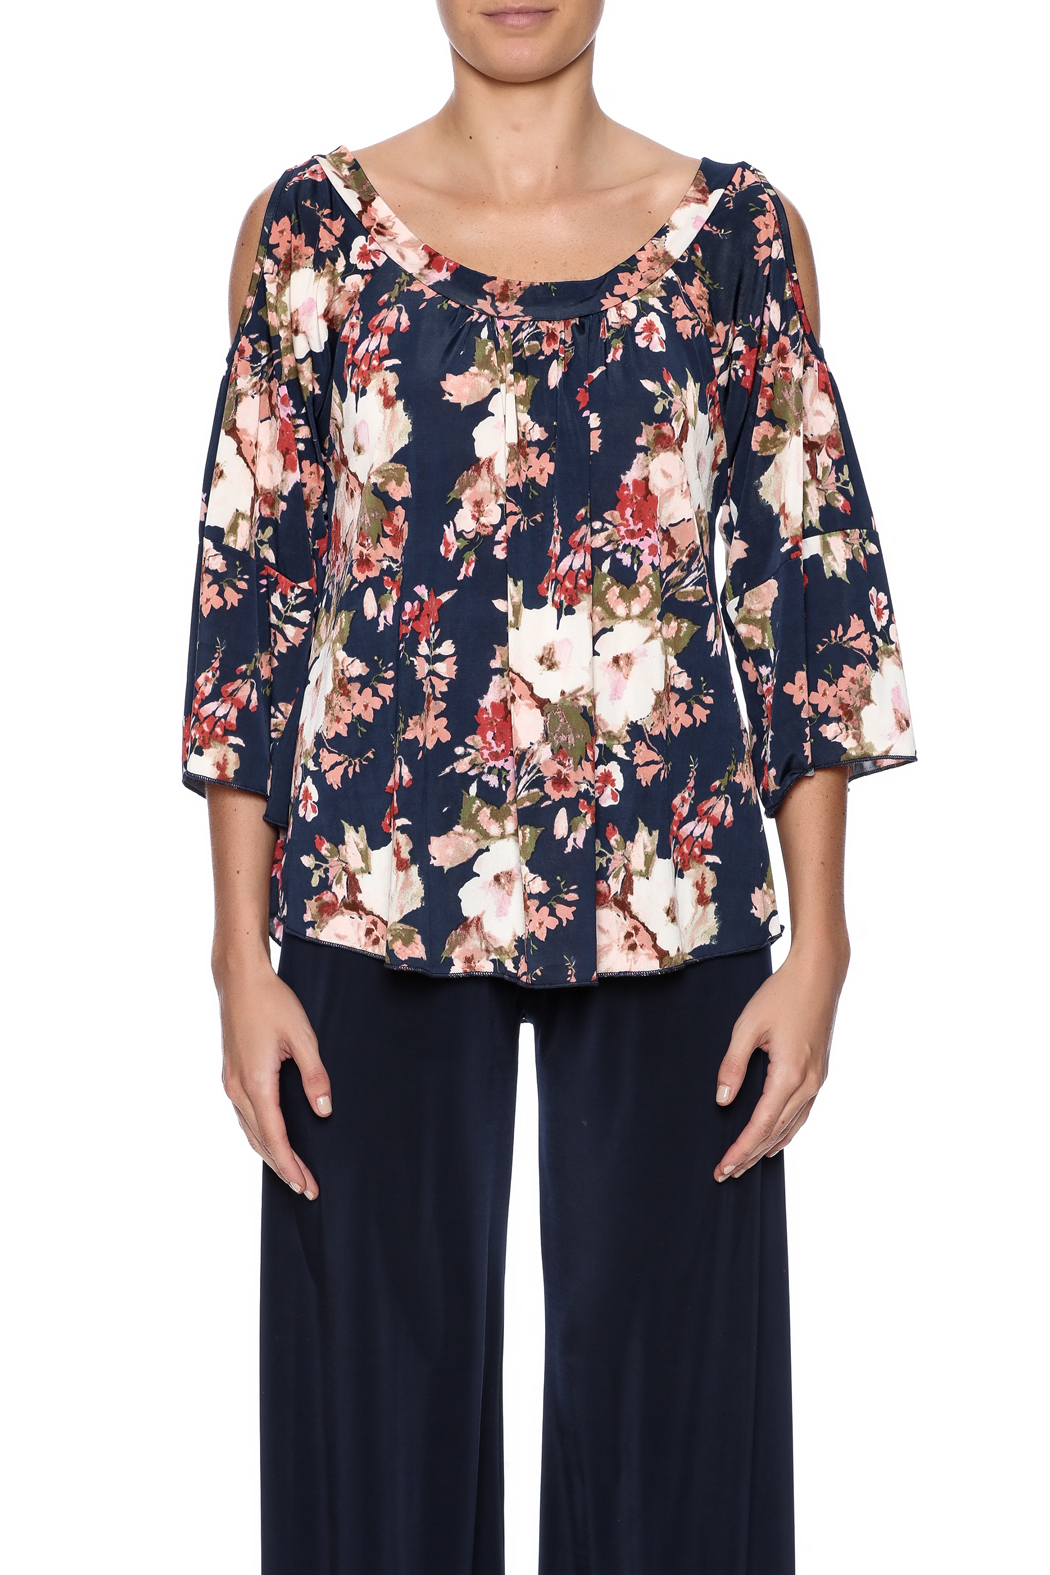 Veronica M Cold Shoulder Floral Top - Side Cropped Image